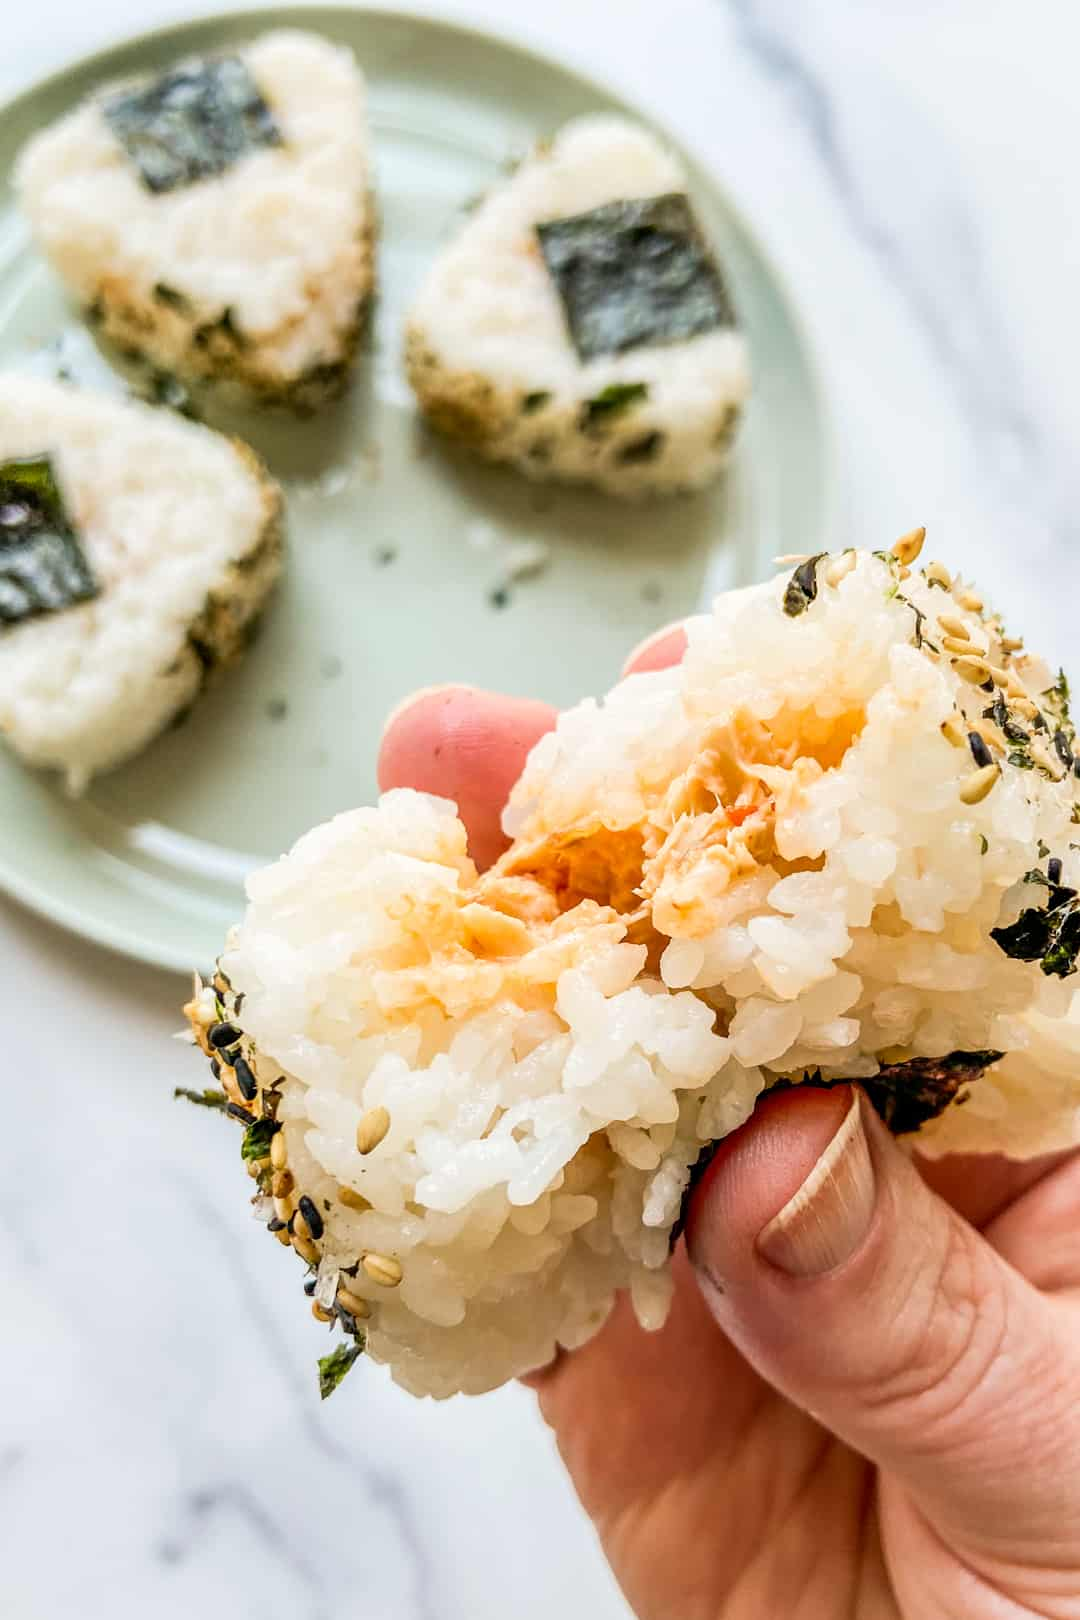 A hand holding an onigiri with a bite taken out of it.